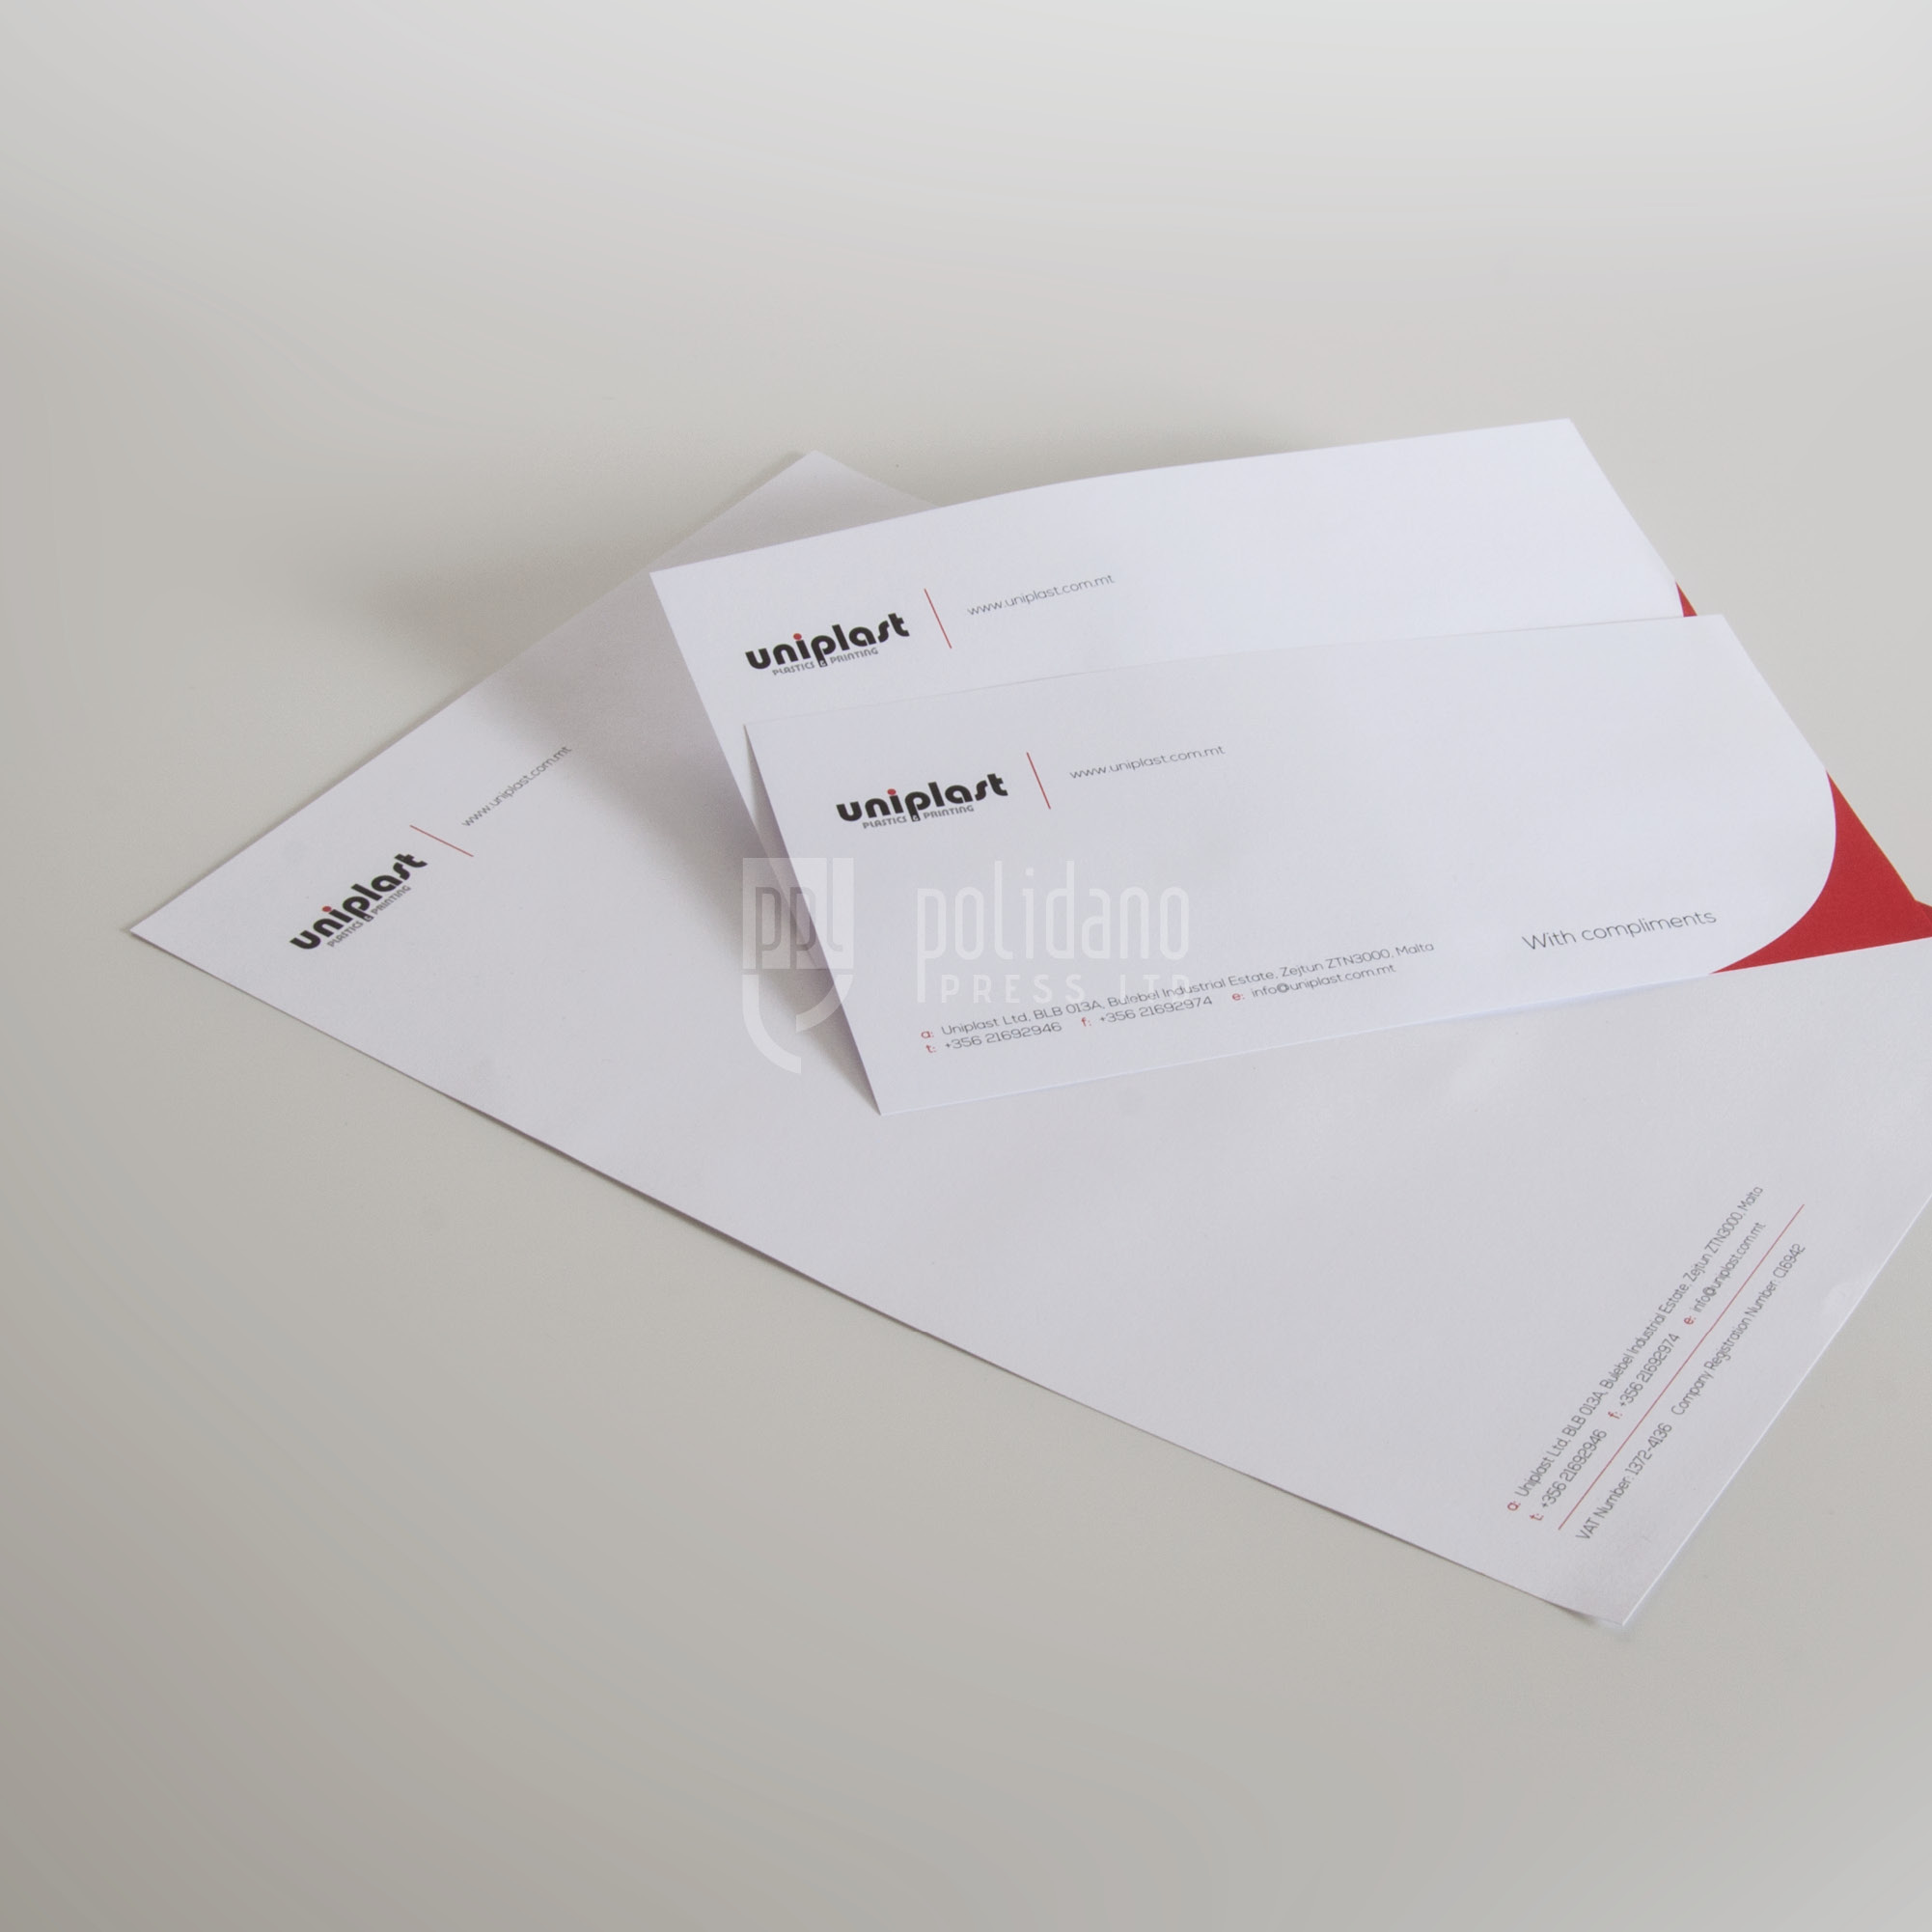 Uniplast stationery